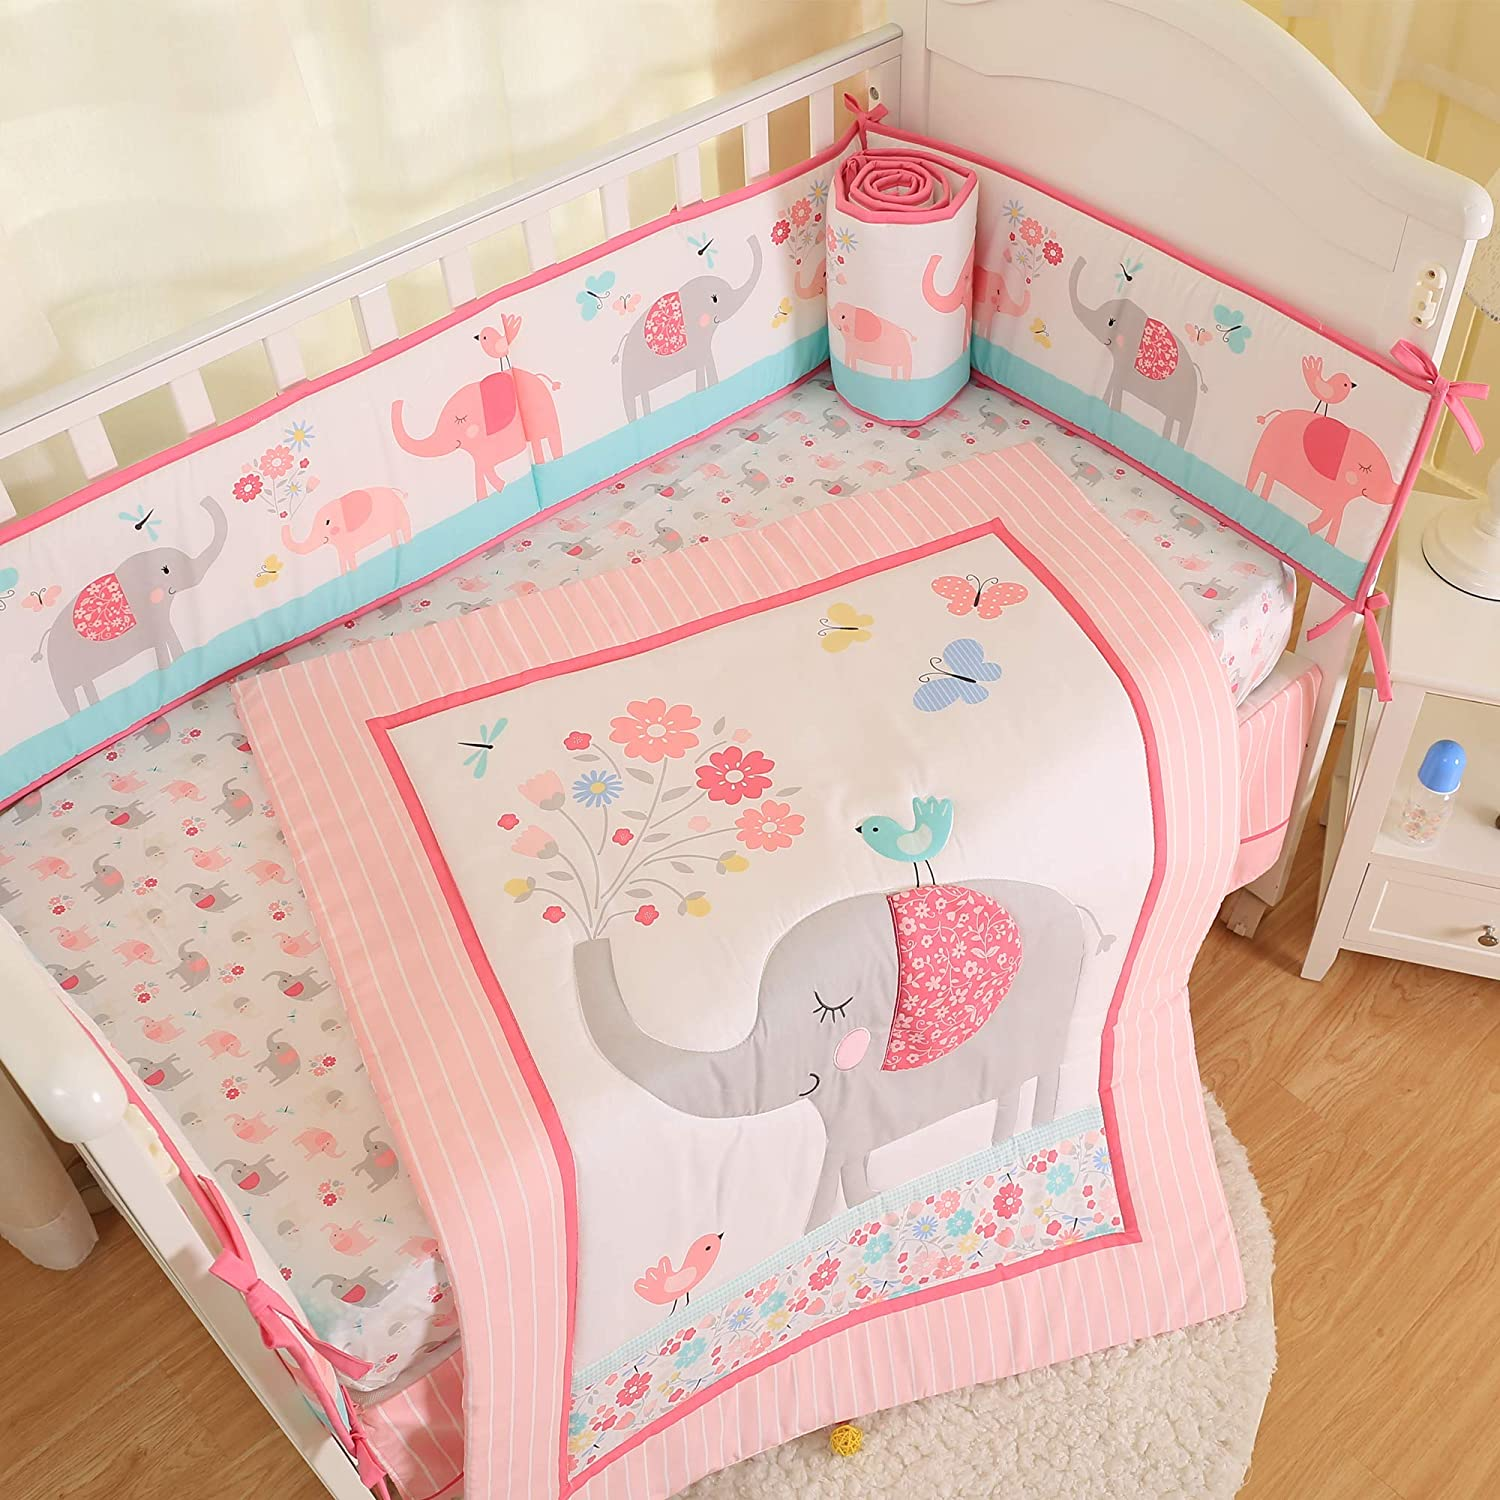 Brandream Pink Elephant Crib Bedding Sets for Baby Girls   3 Piece Nursery Set   Crib Comforter, Fitted Crib Sheet, Crib Skirt Included with Garden Birds Floral Design